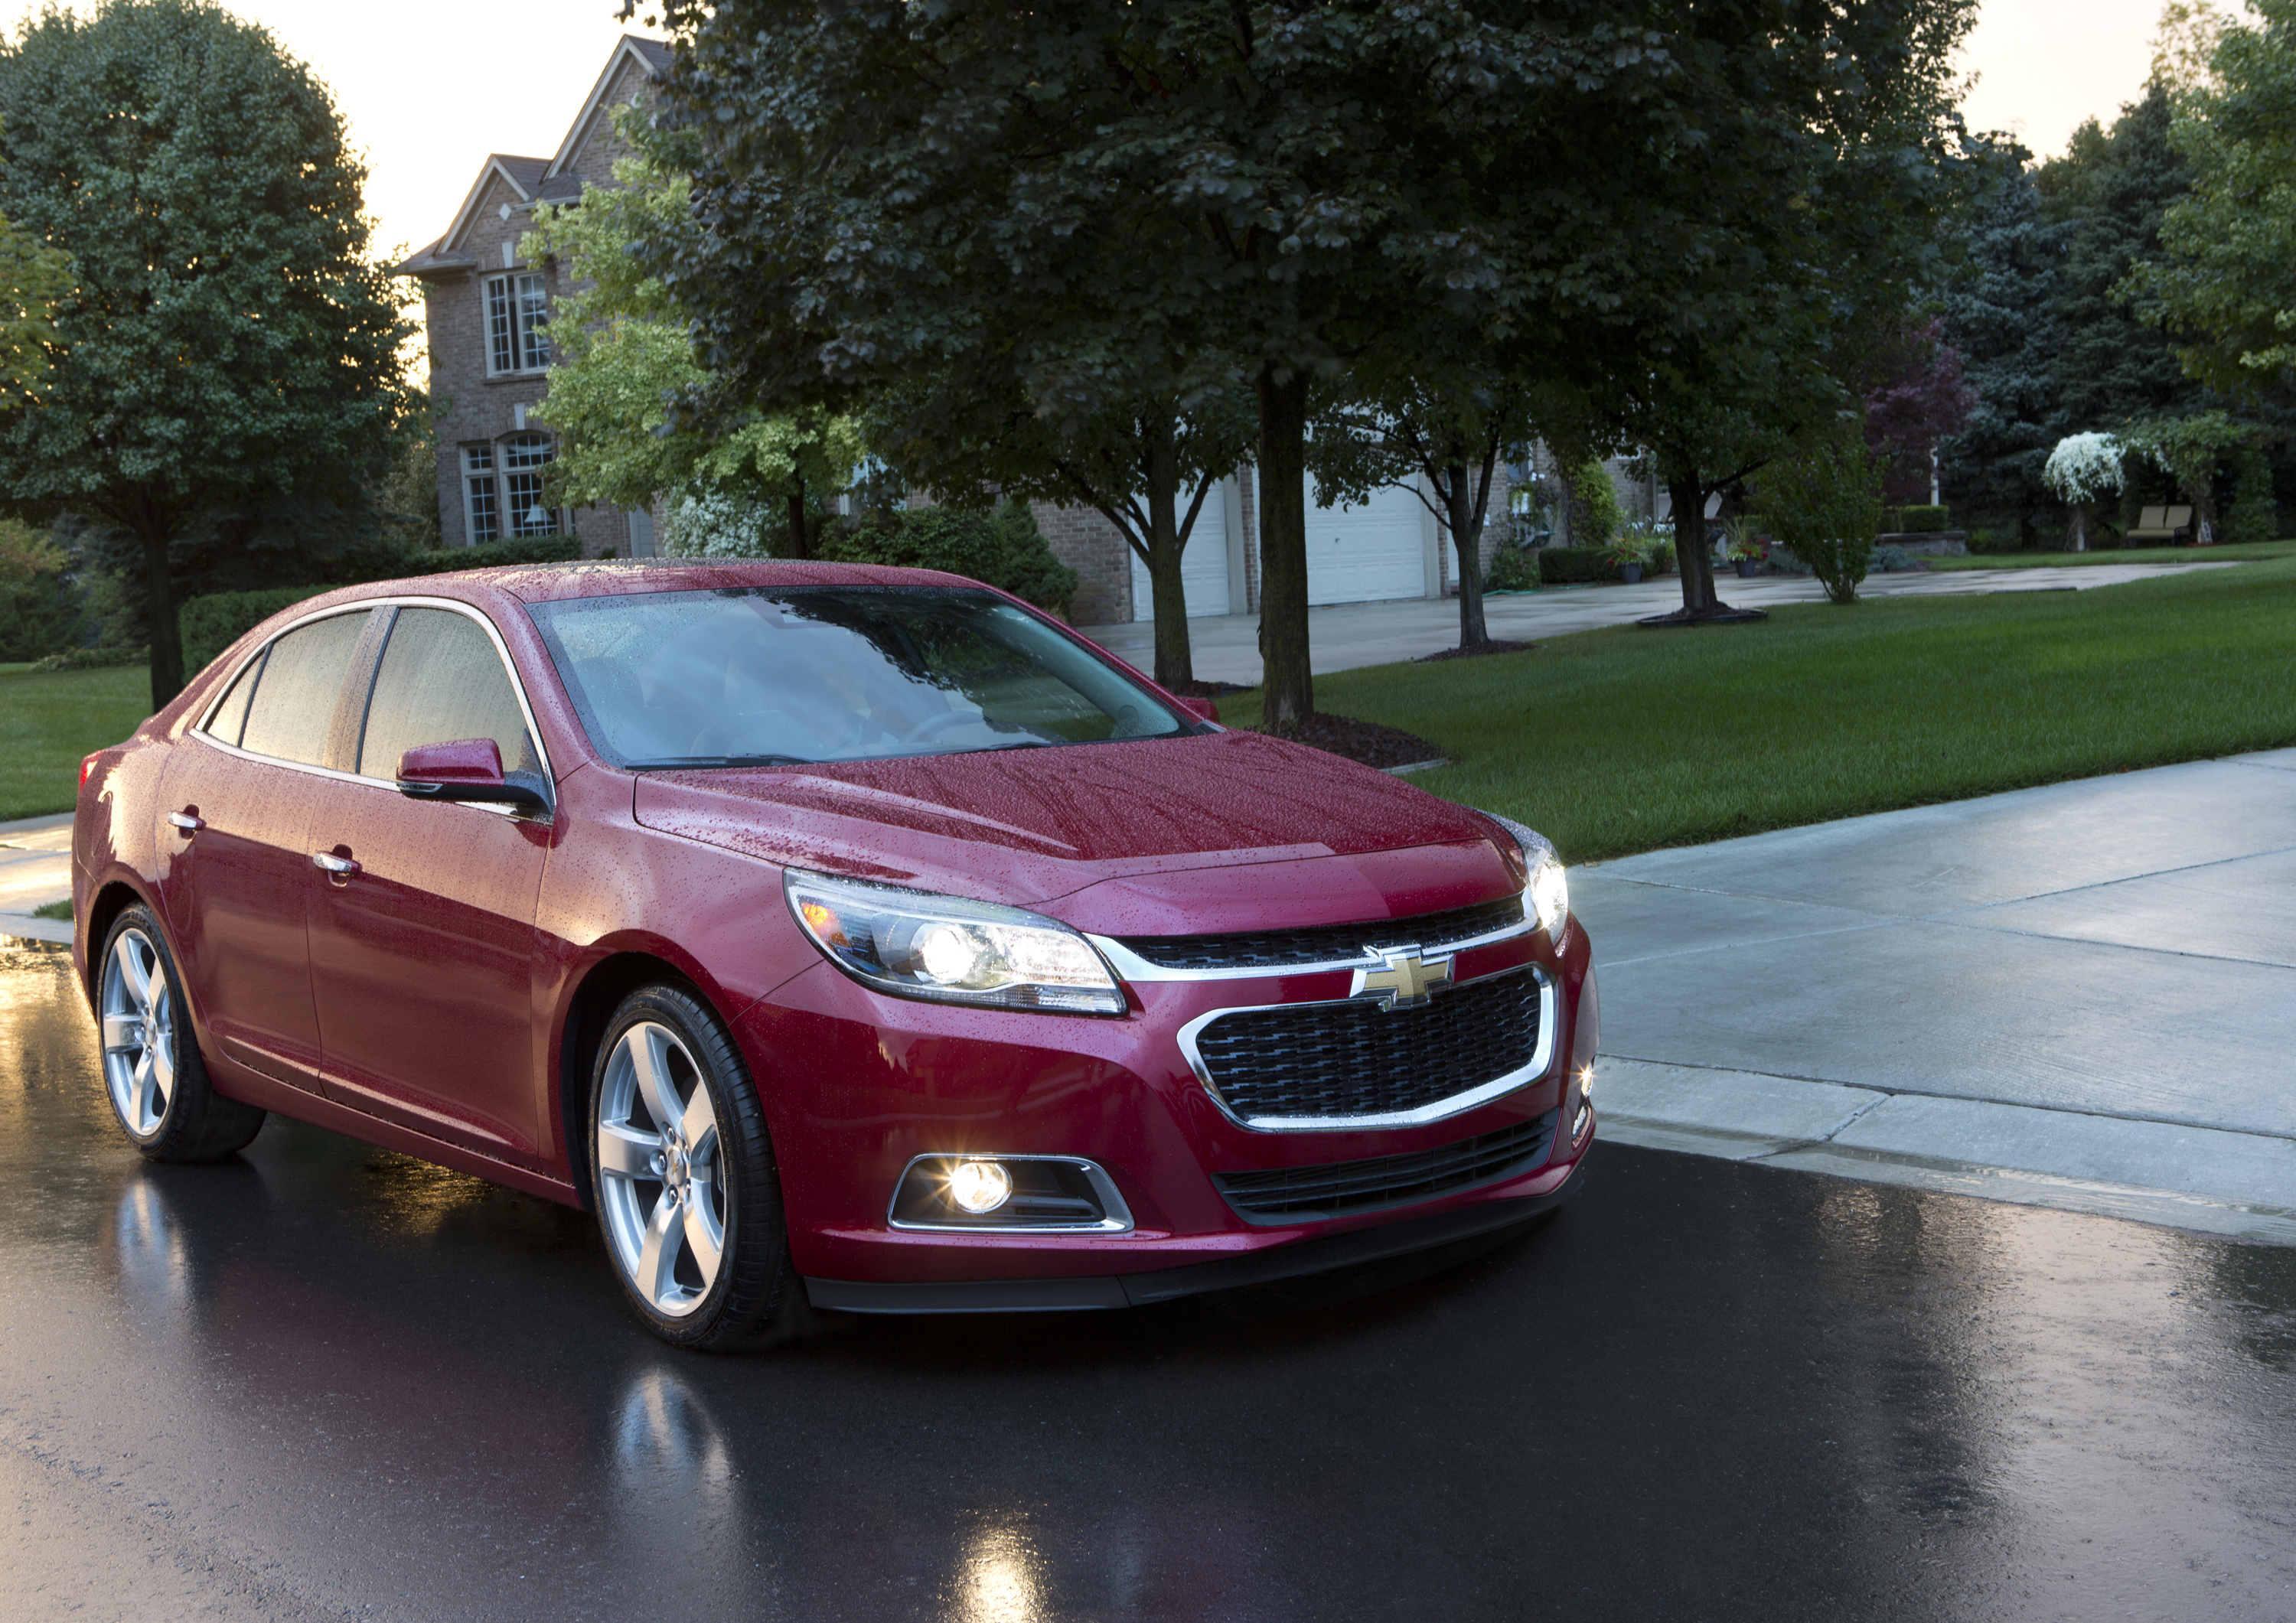 2014 Chevrolet Malibu 010 gm announces five safety recalls  at arjmand.co